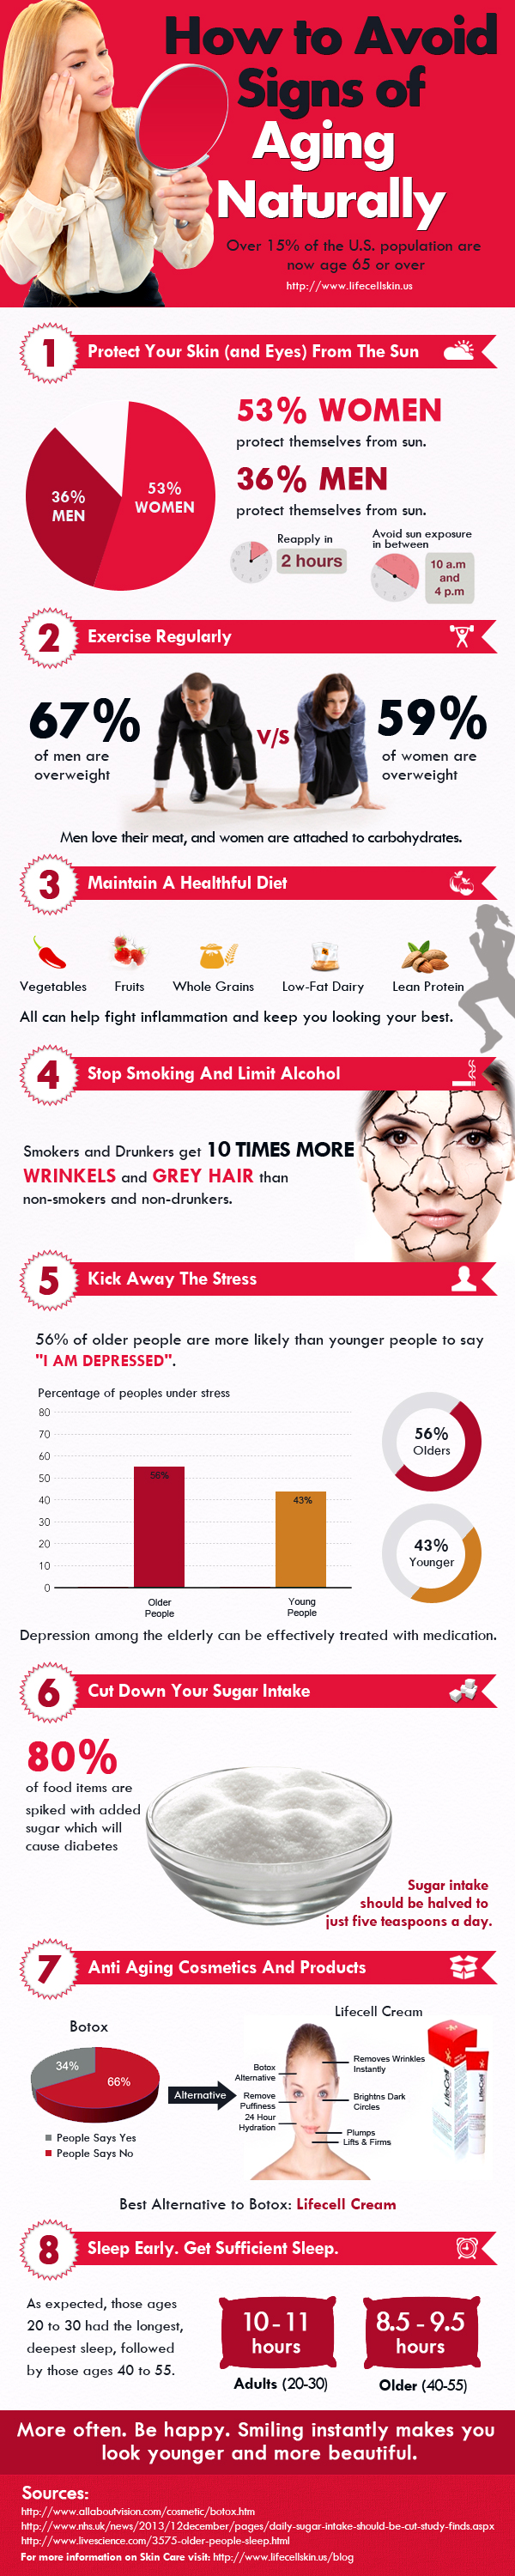 How to avoid signs of aging naturally infographic lifecell anti